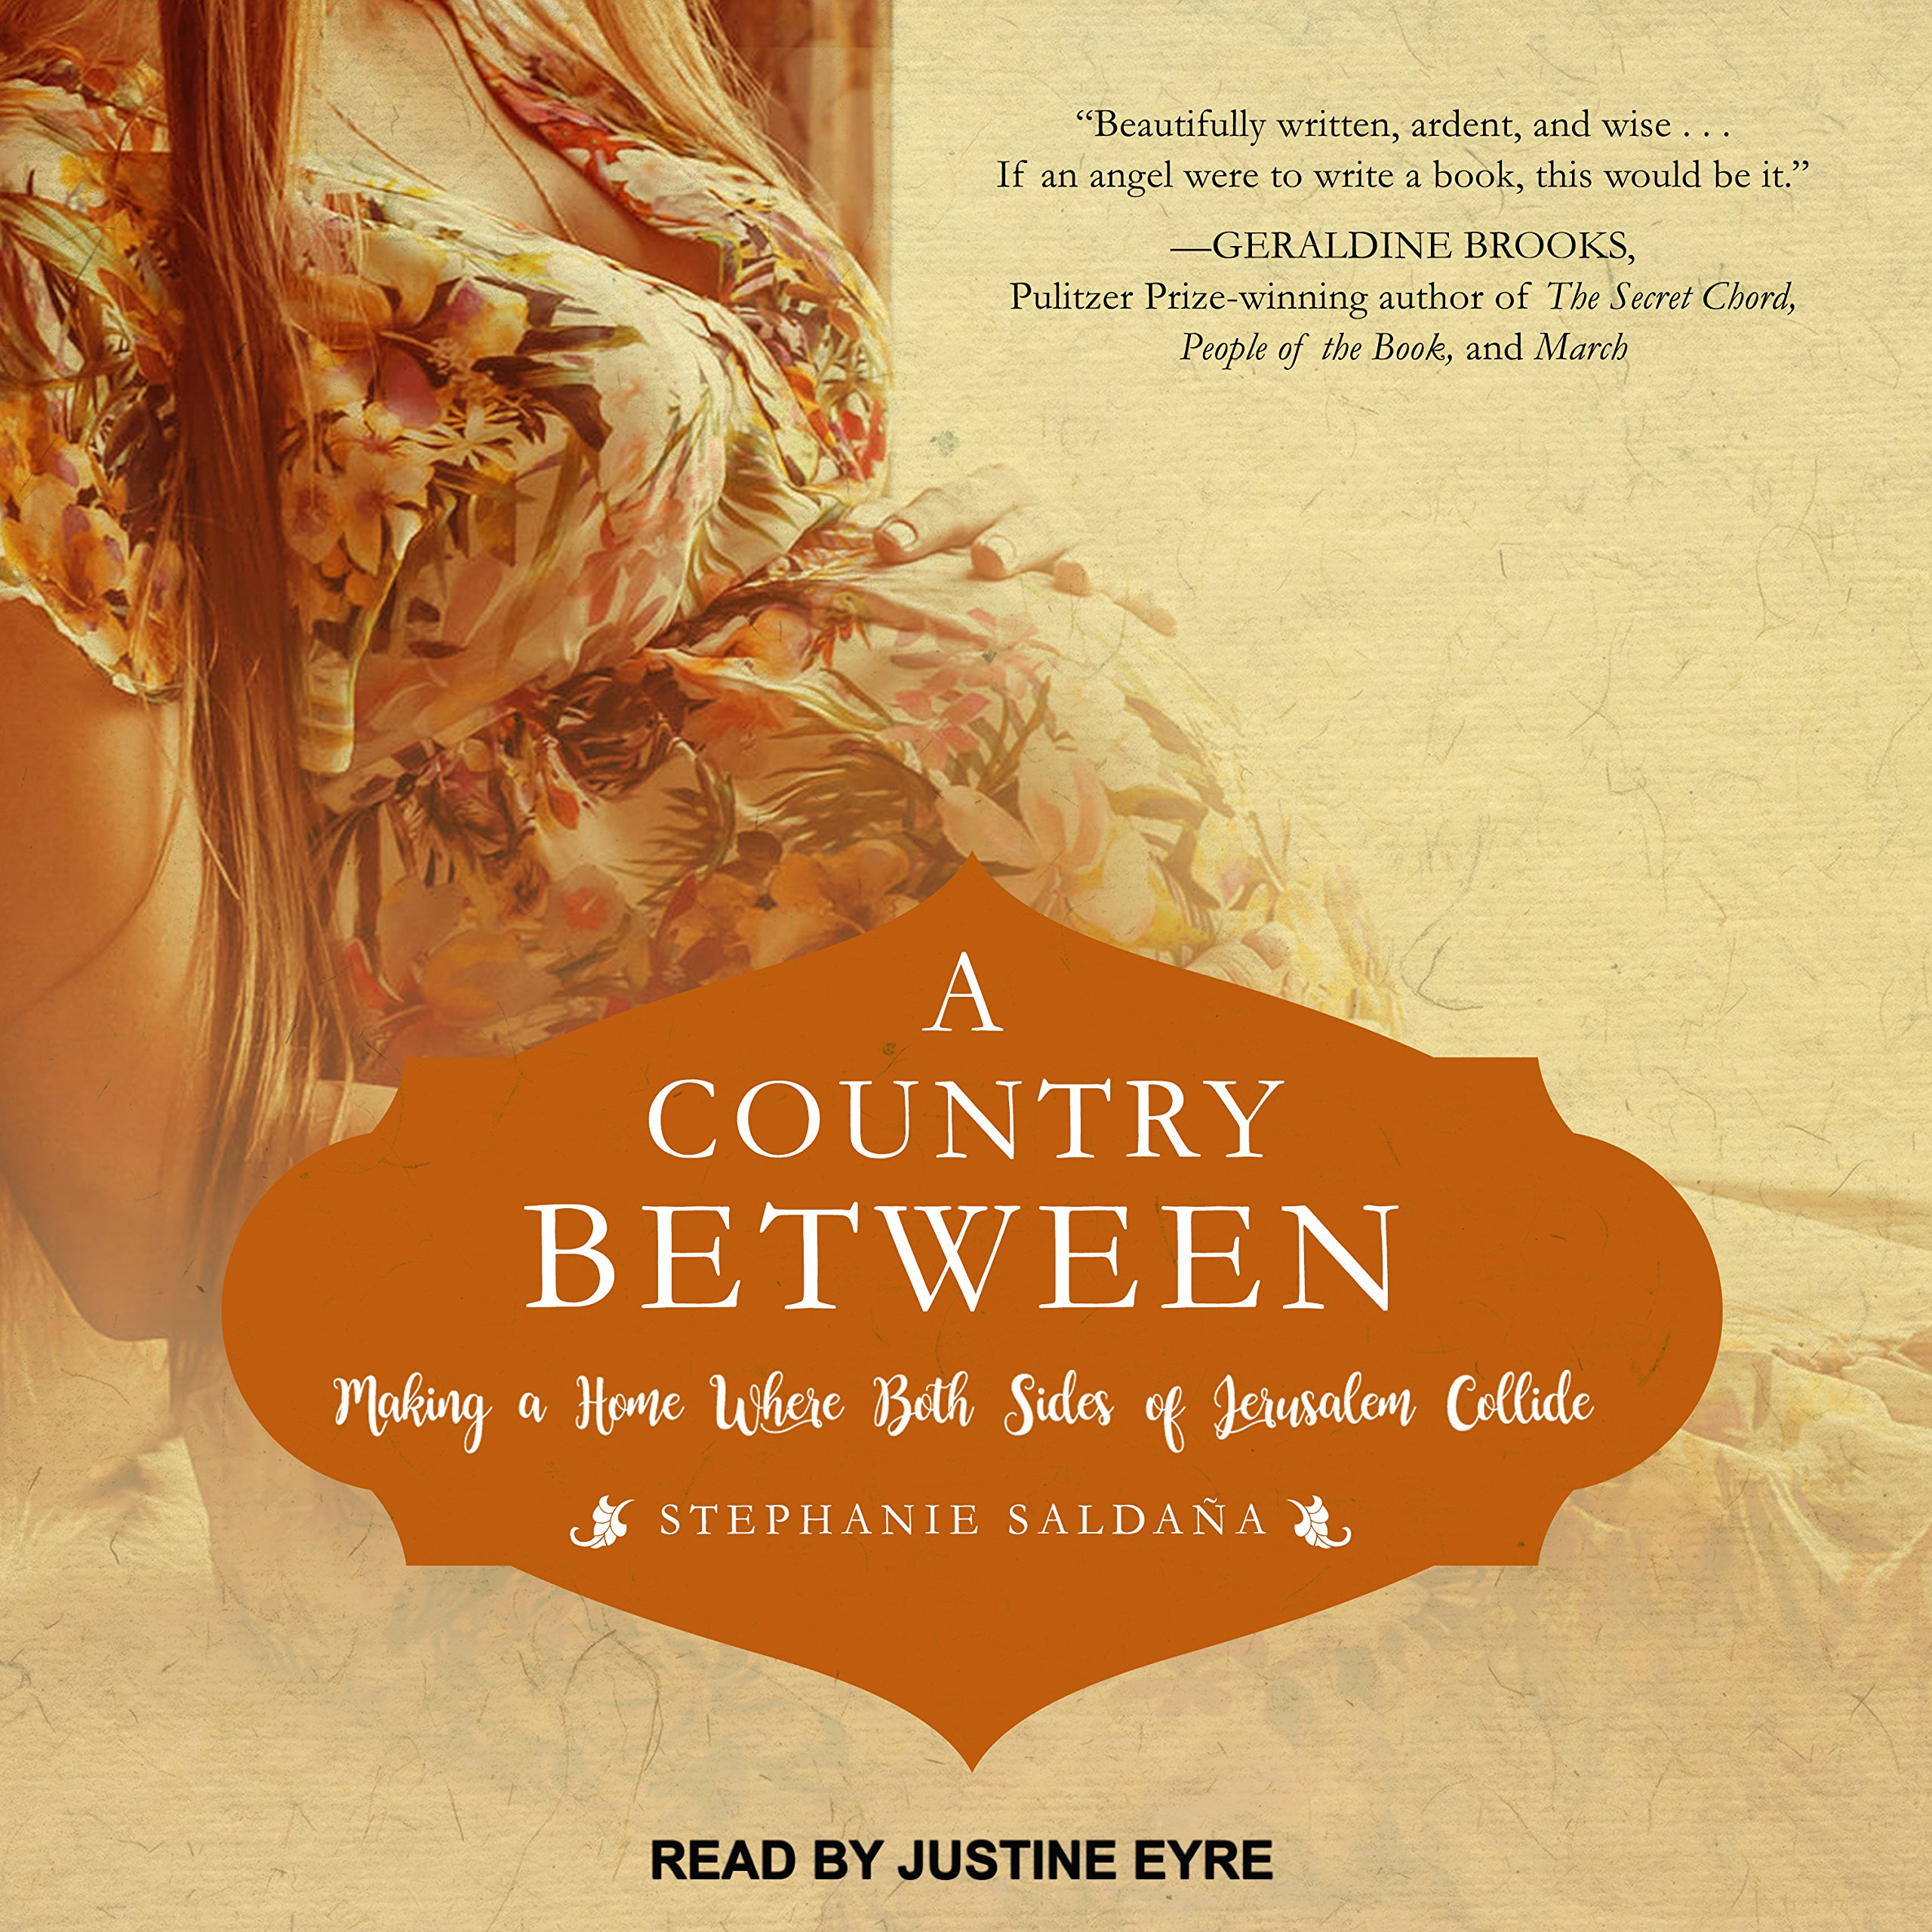 A Country Between: Making A Home Where Both Sides Of Jerusalem Collide:  Stephanie Saldana, Justine Eyre: 9781541451889: Amazon: Books